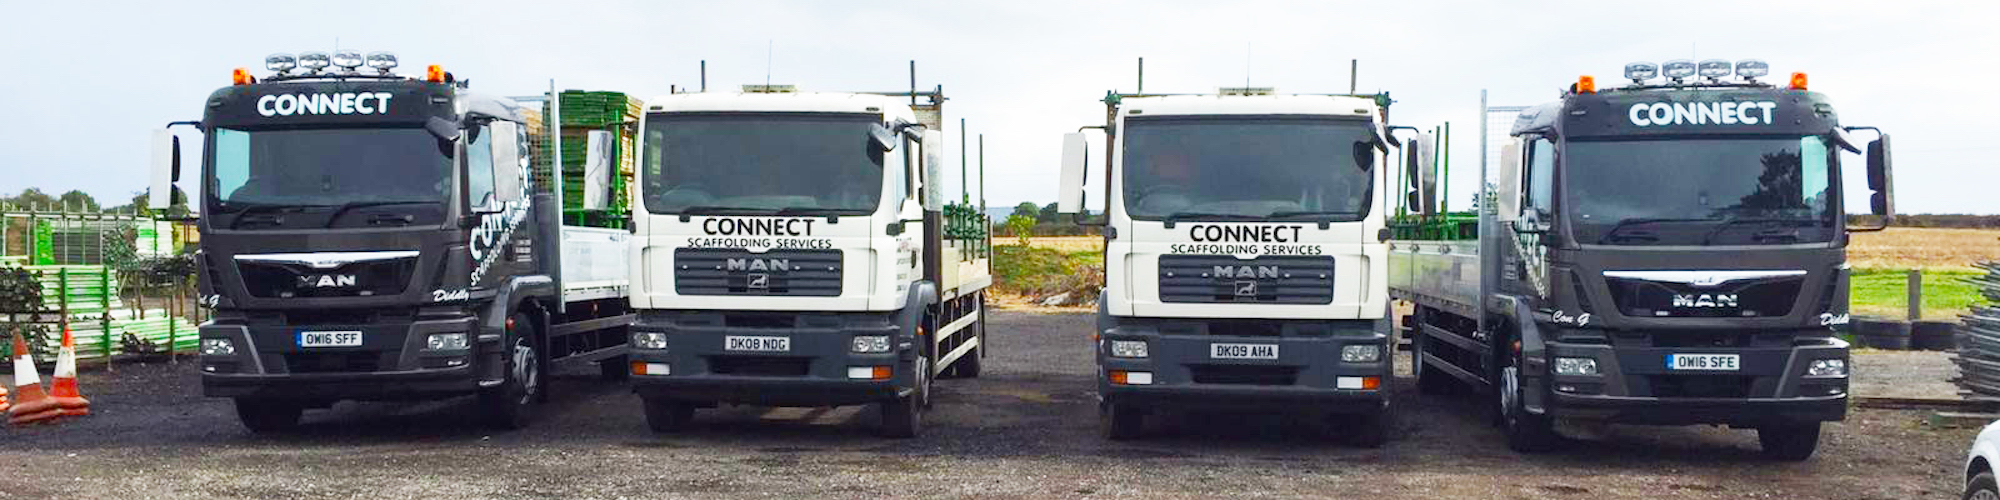 colour image of trucks of connect scaffolding thame oxfordshire